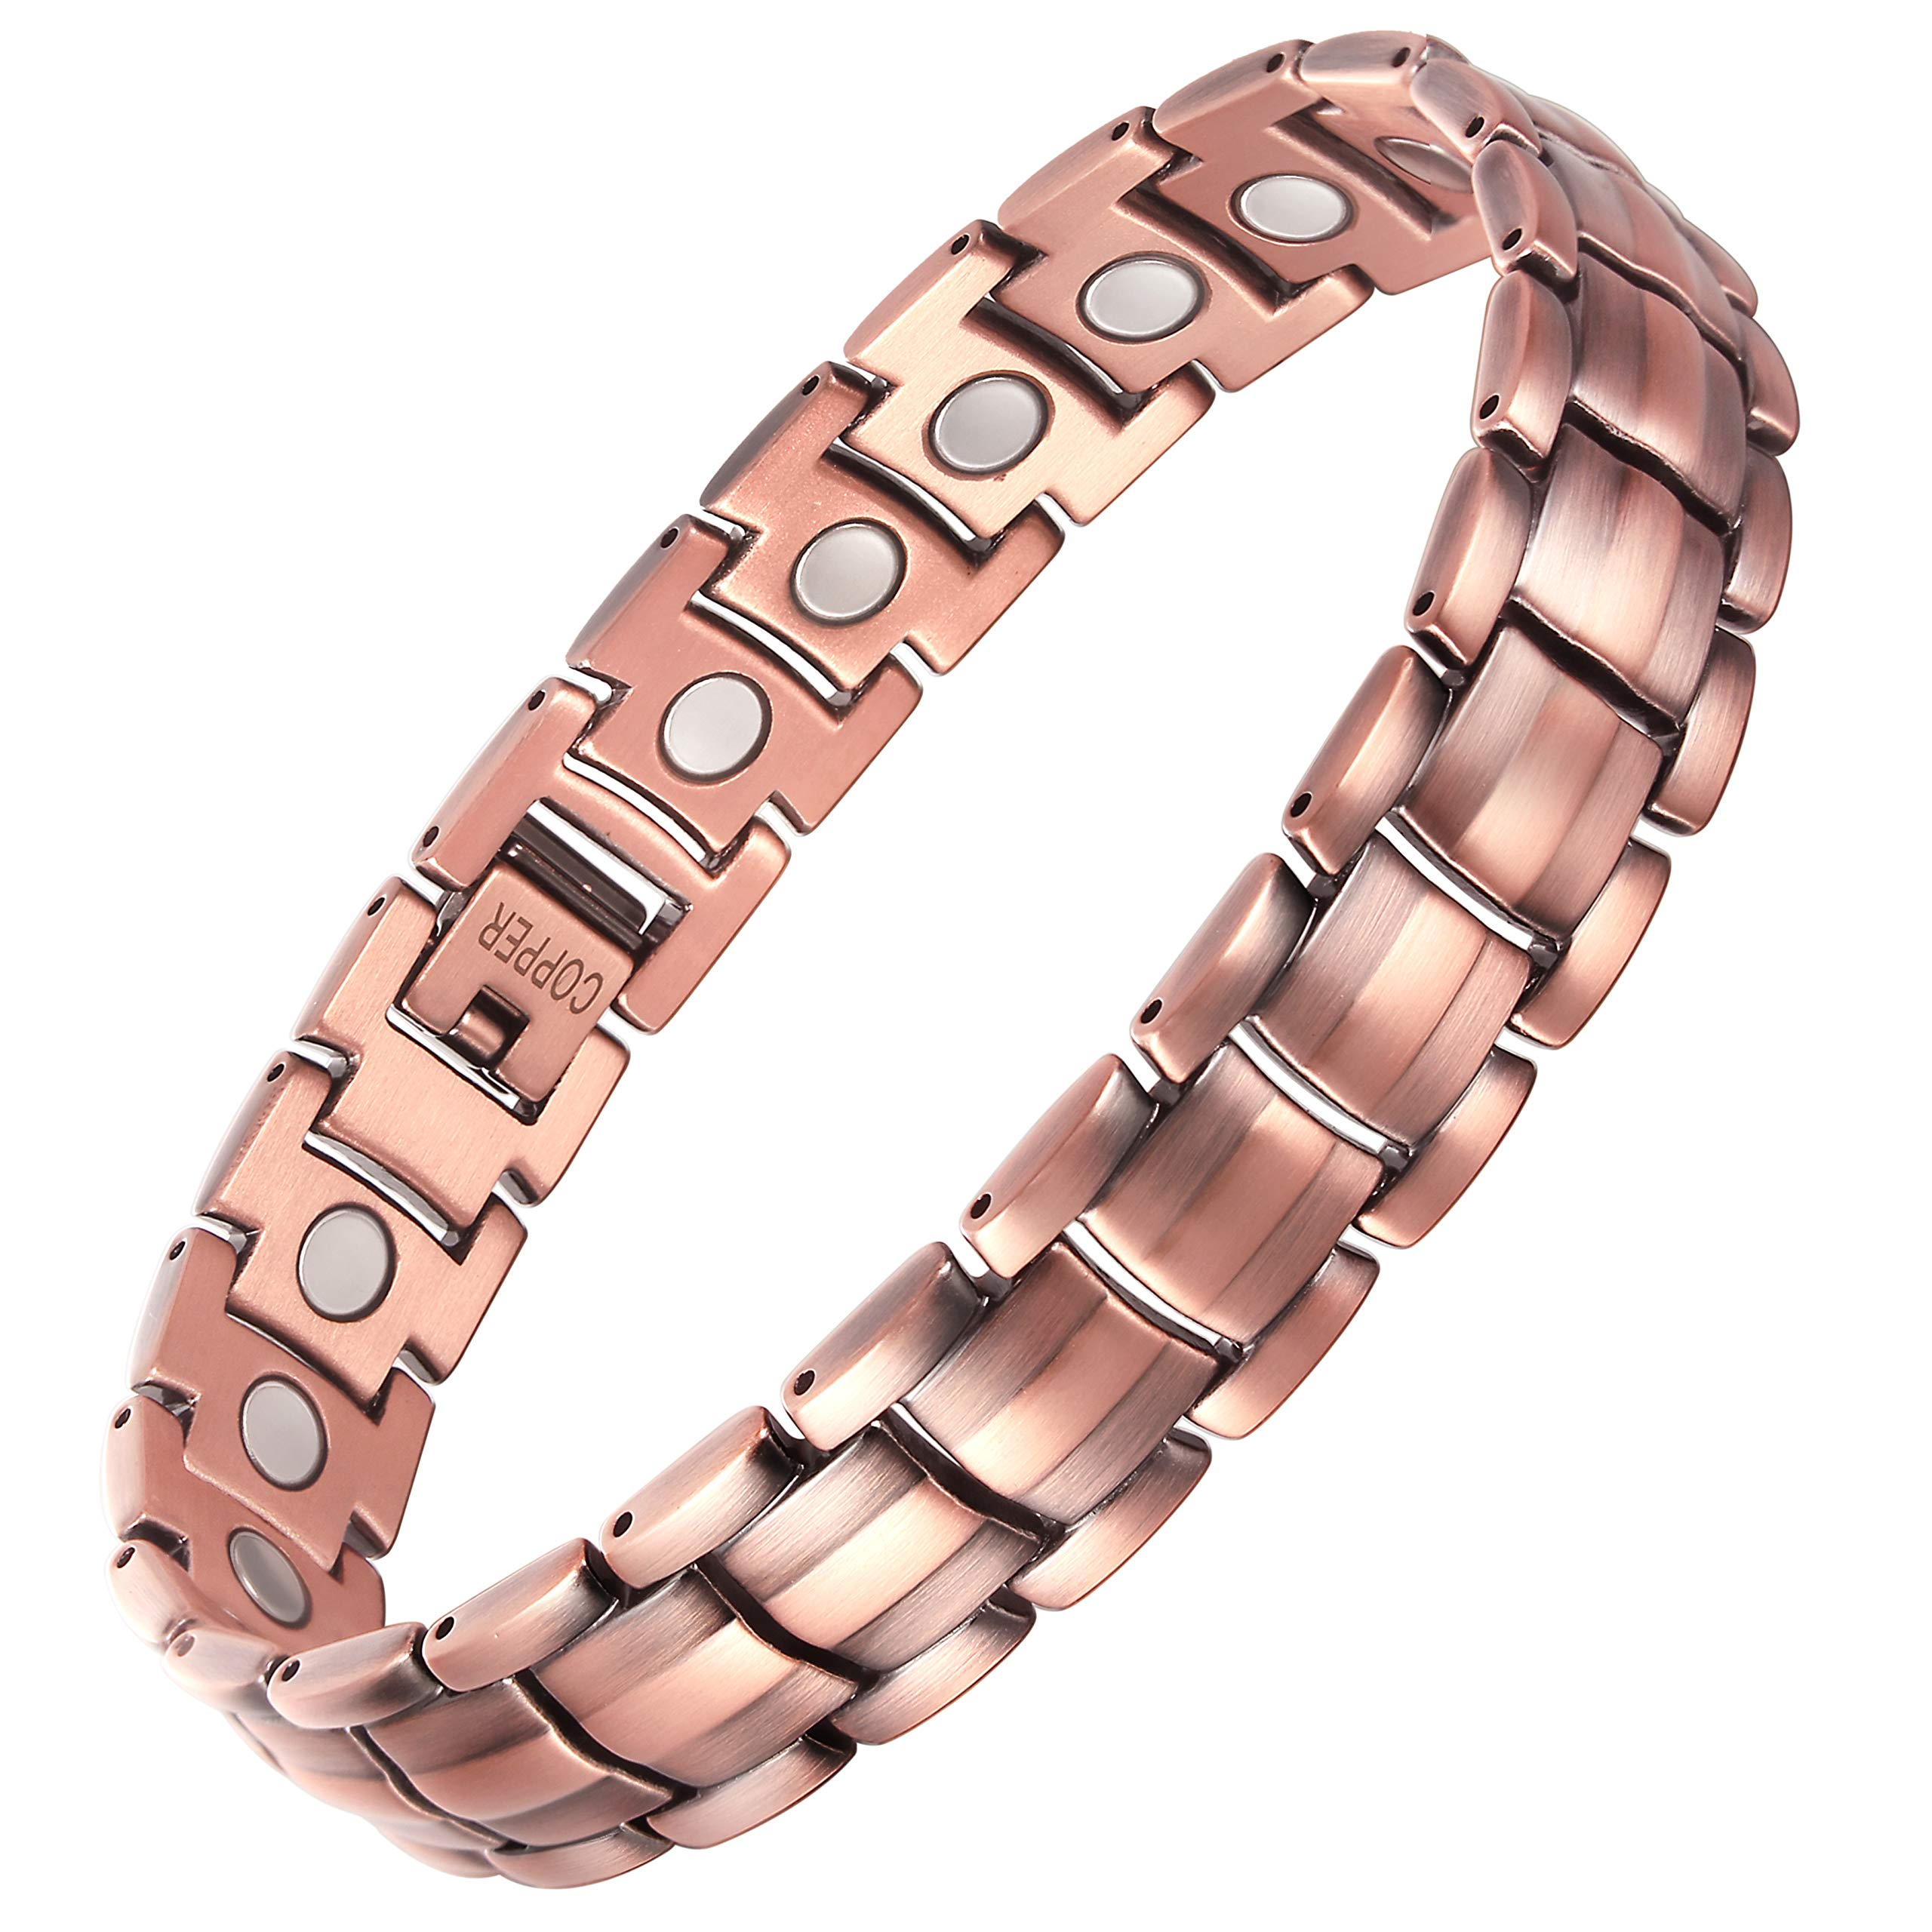 VITEROU Mens 100% Solid Pure Copper Magnetic Therapy Bracelet with Strong Healing Magnets for Arthritis Pain Relief,3500 Gauss,8.5 Inches by VITEROU